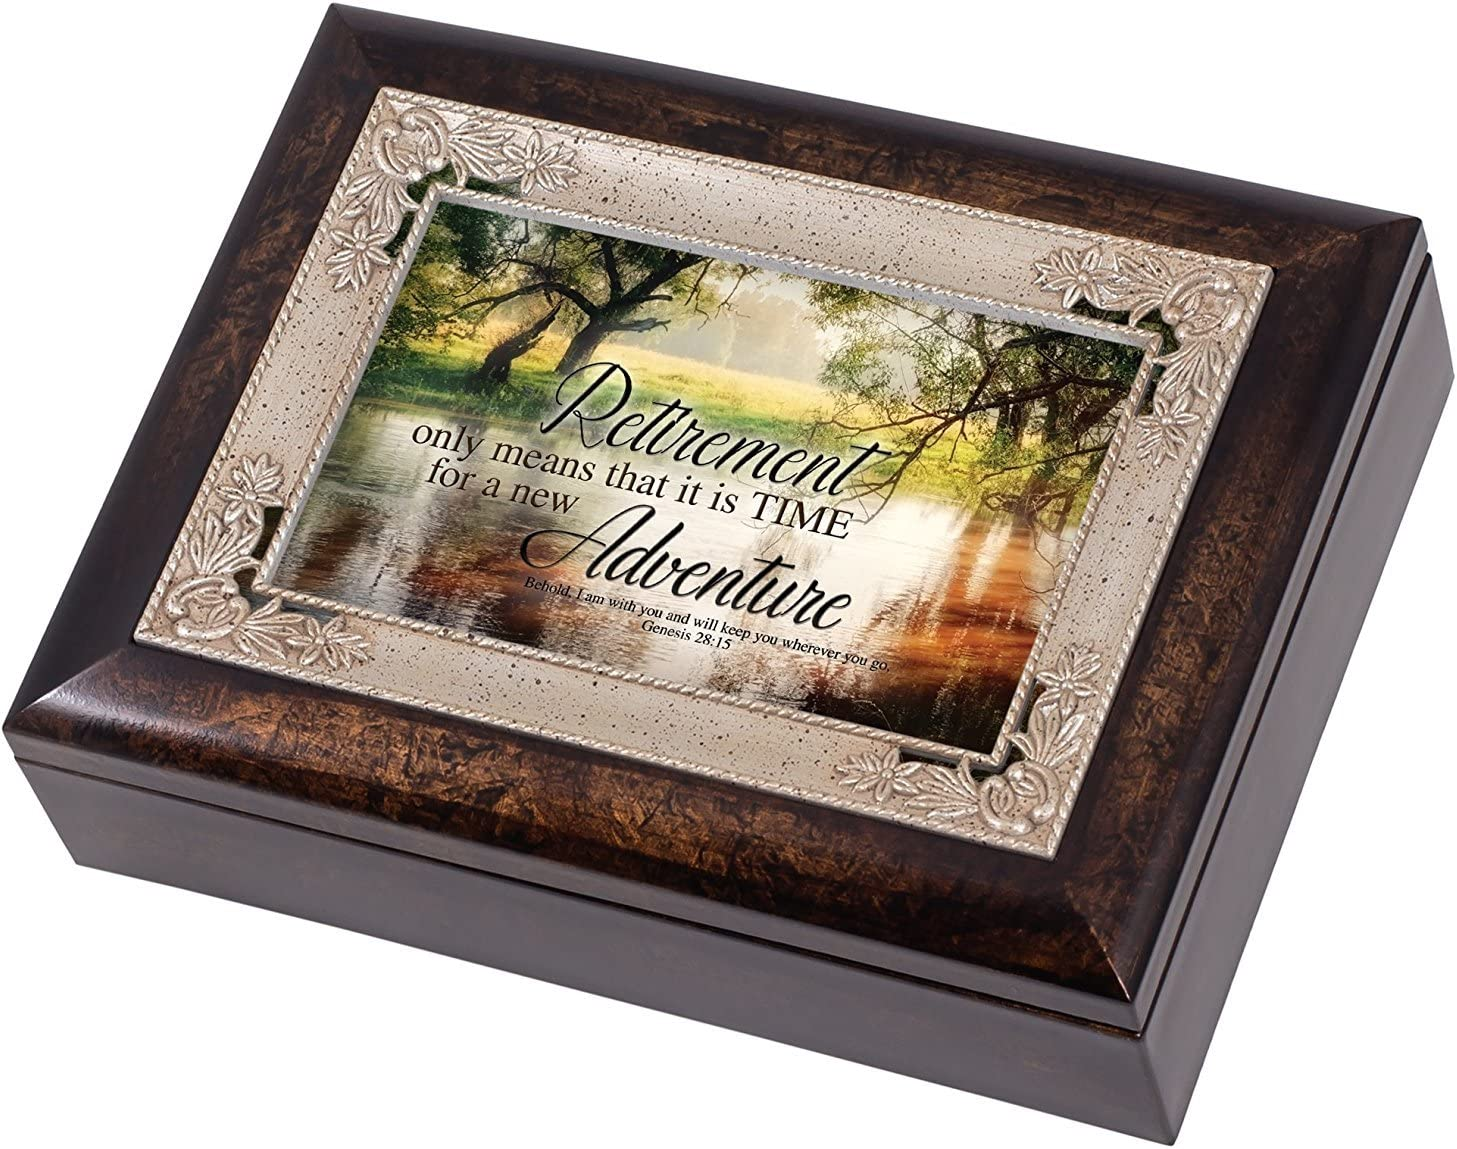 Retirement New Adventure Christian Italian Design Jewelry Music Box Plays Amazing Grace